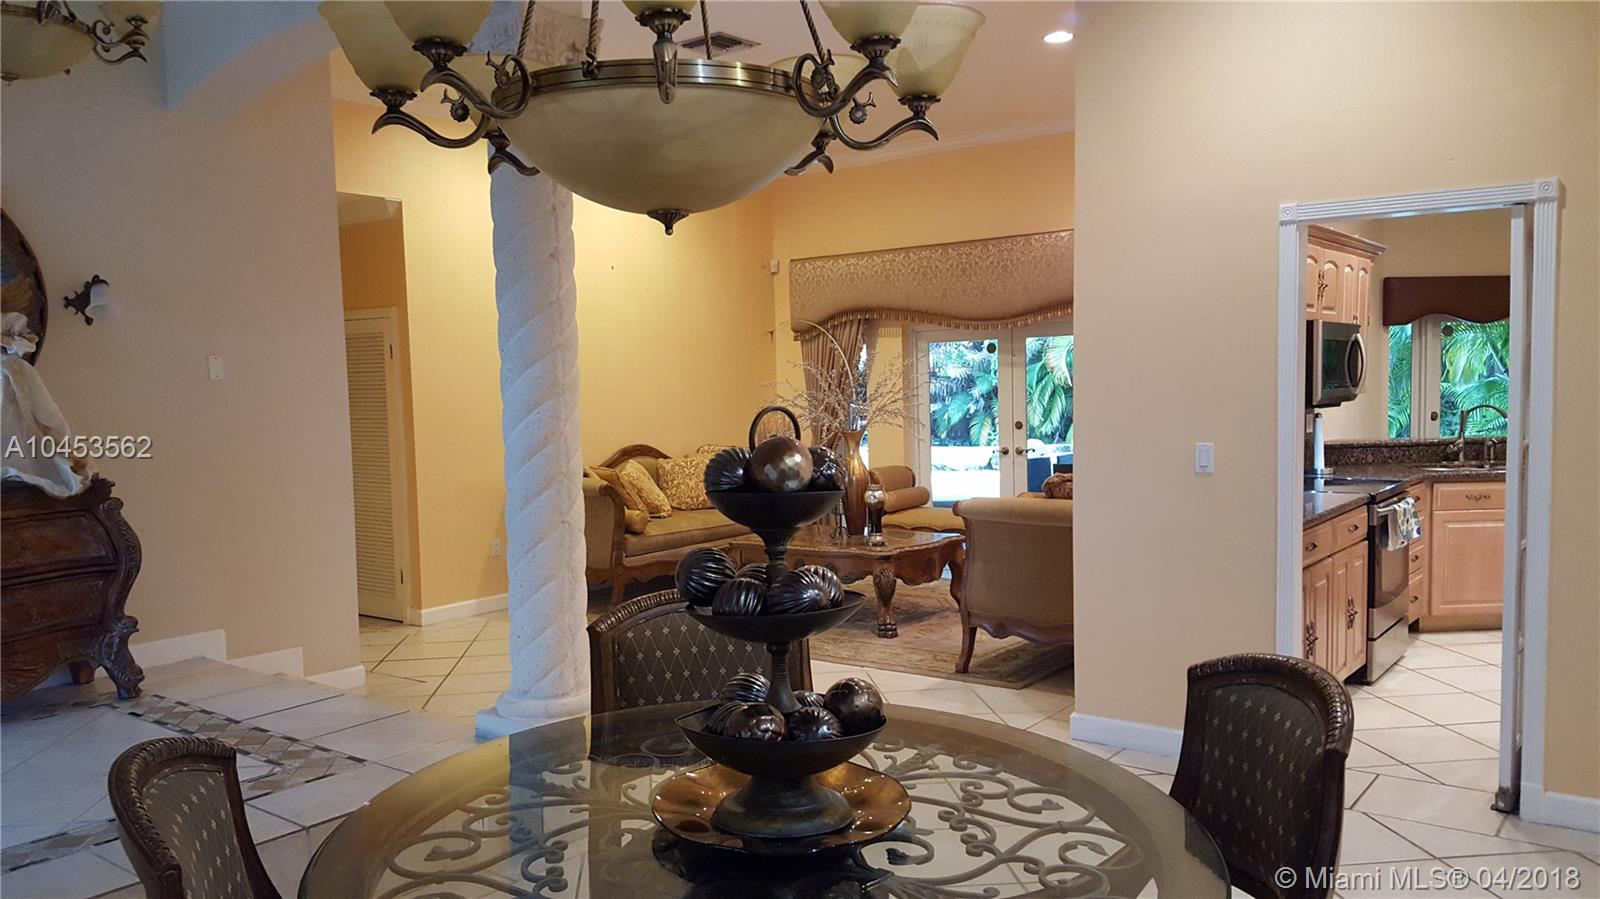 9970 Nw 27th Ter, Doral FL, 33172